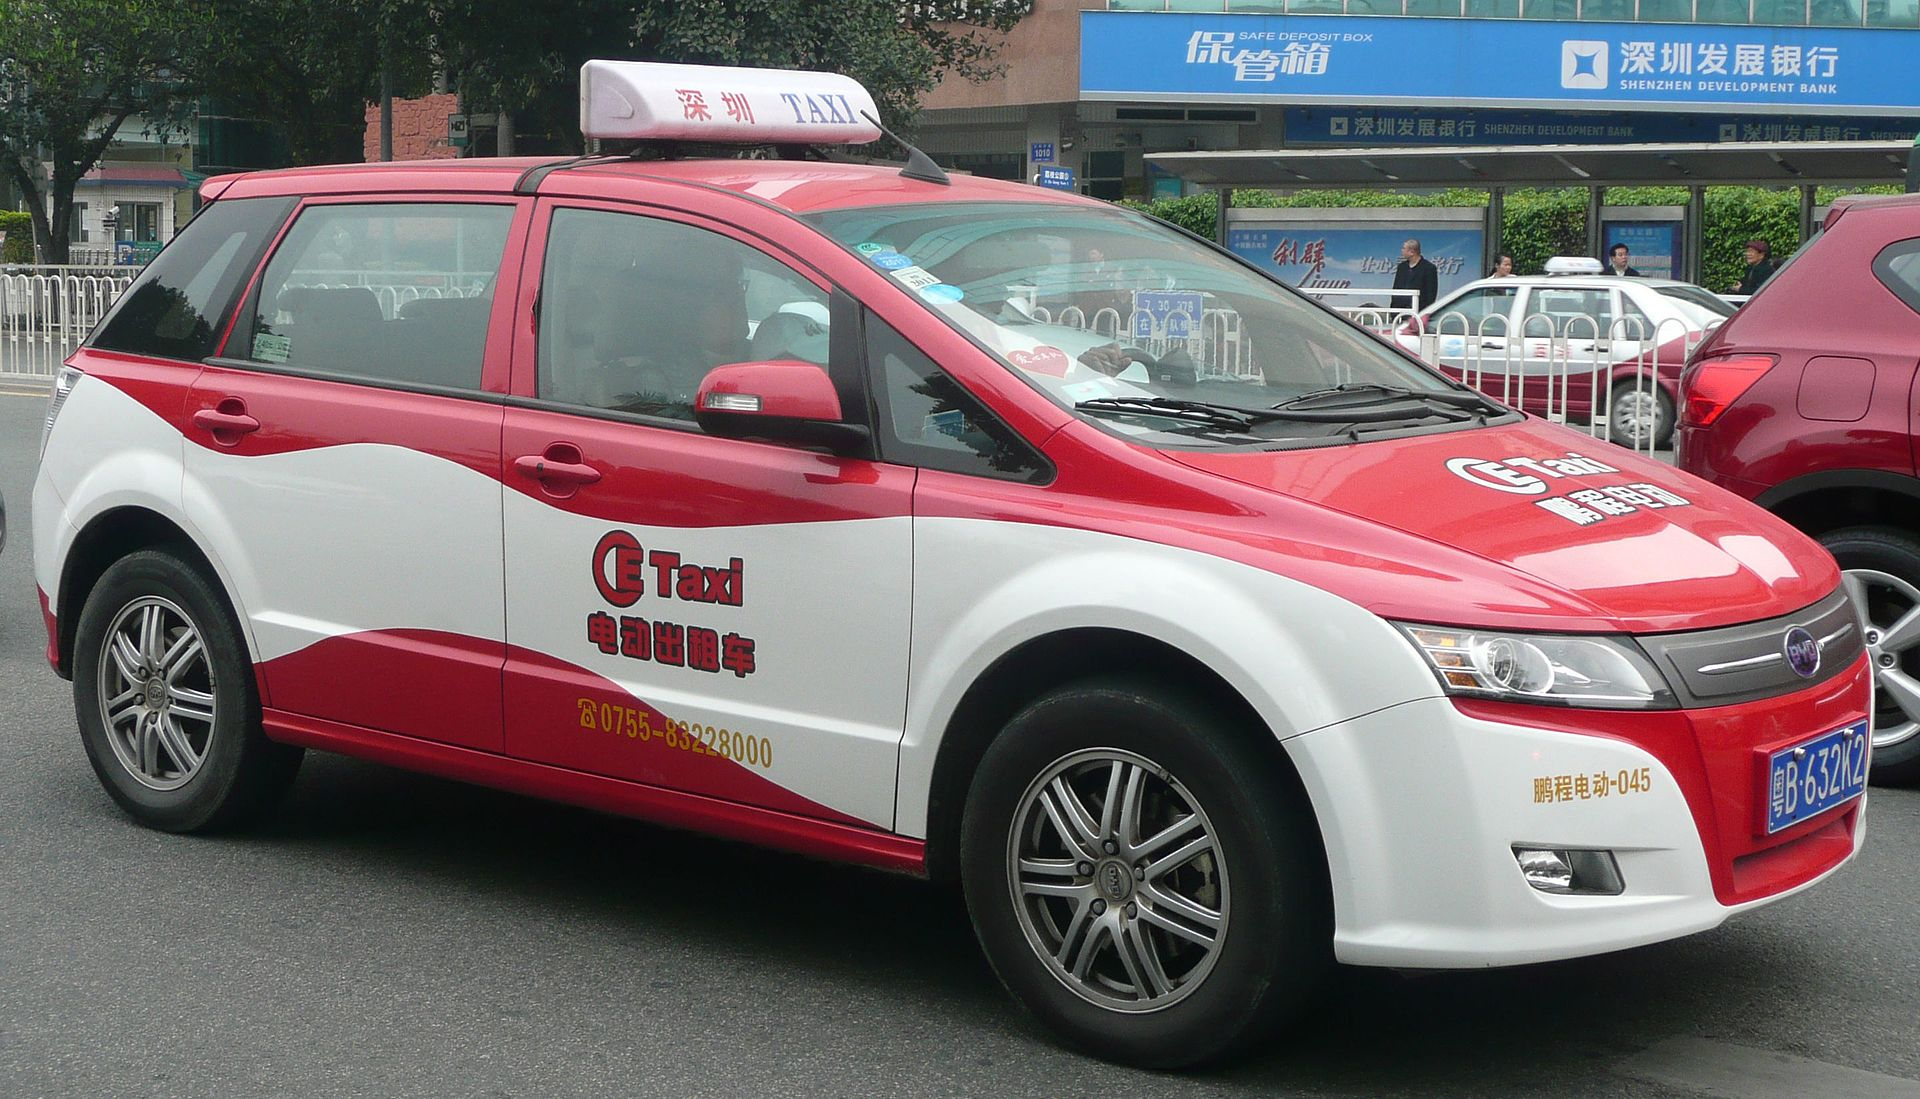 1920px-byd_electric_taxi